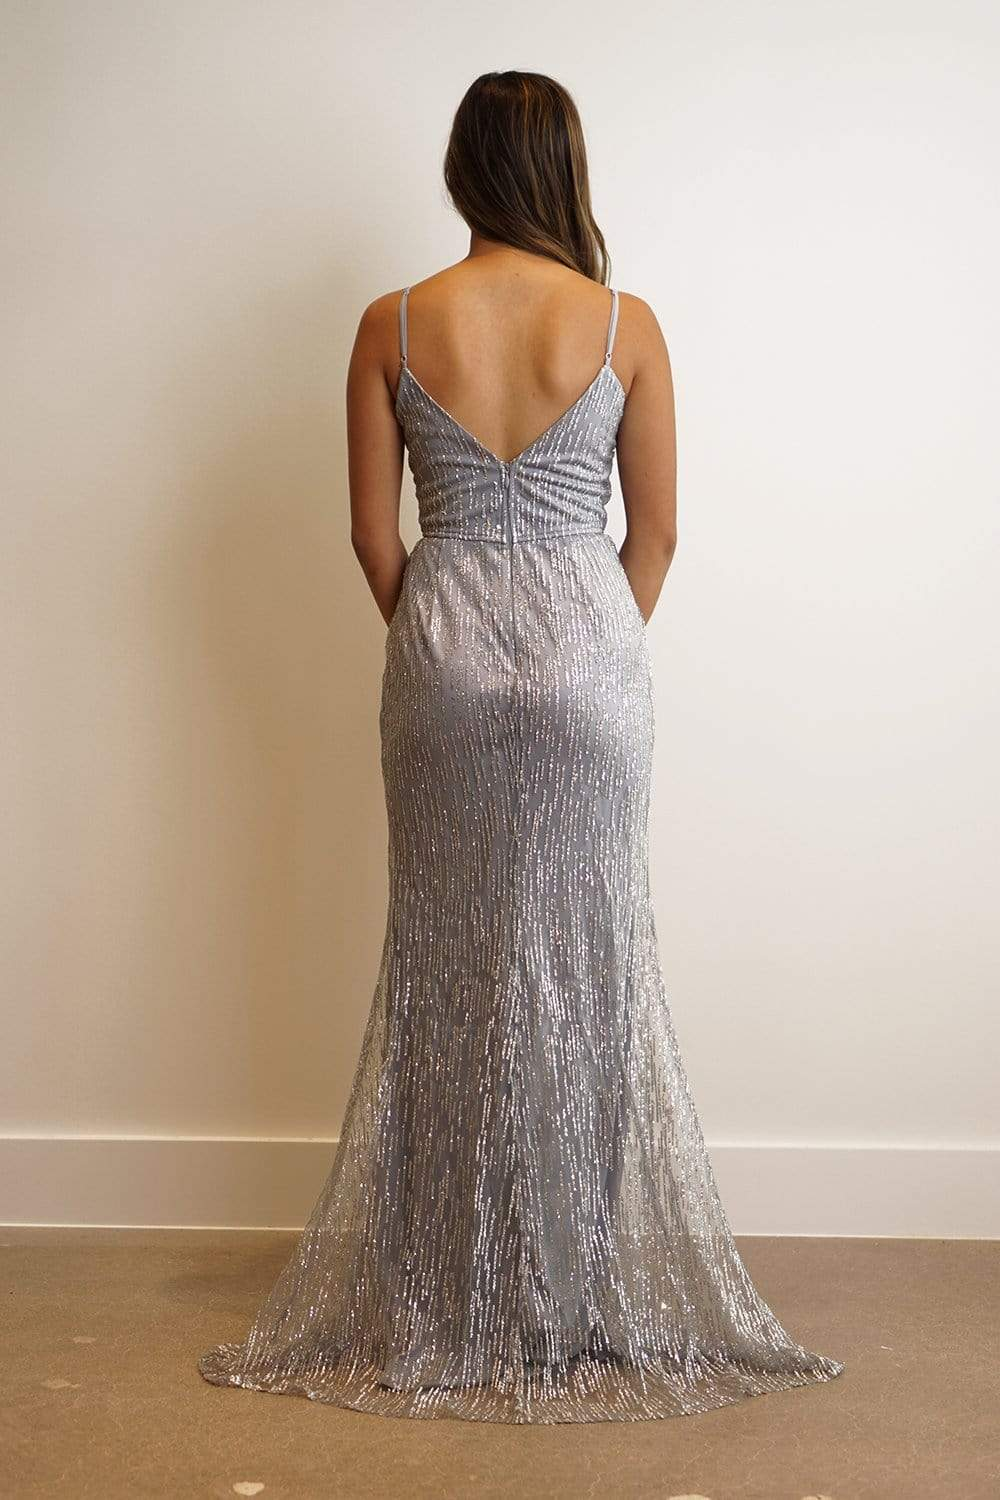 GOWN Icy Blue Strap Sequin Sweetheart Fitted Gown - Chloe Dao